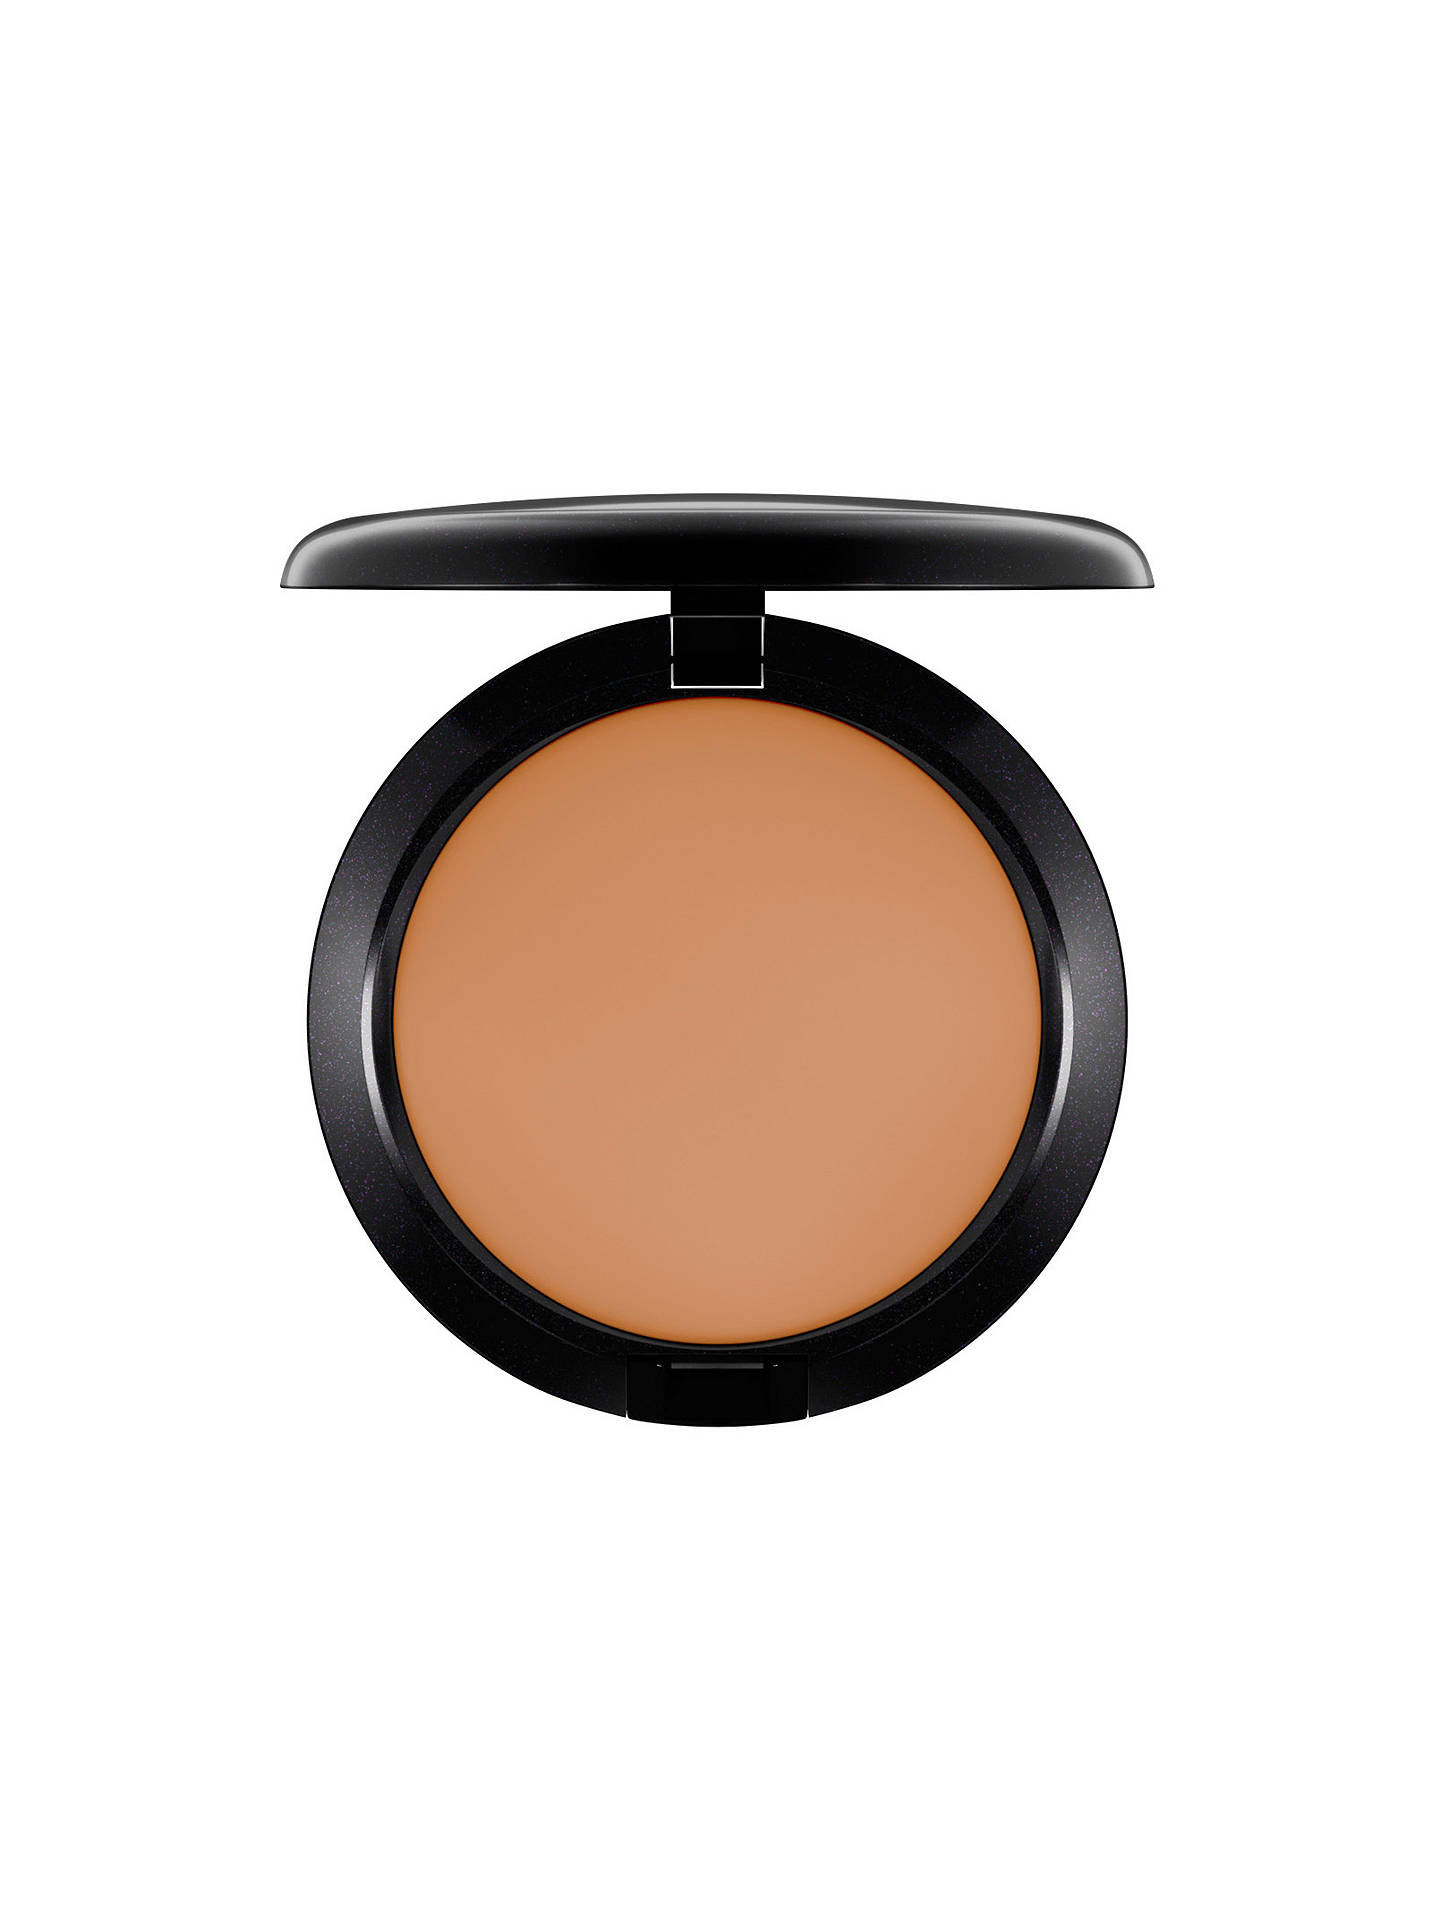 BuyMAC Prep + Prime BB Beauty Balm Compact SPF30, Dark Plus Online at johnlewis.com